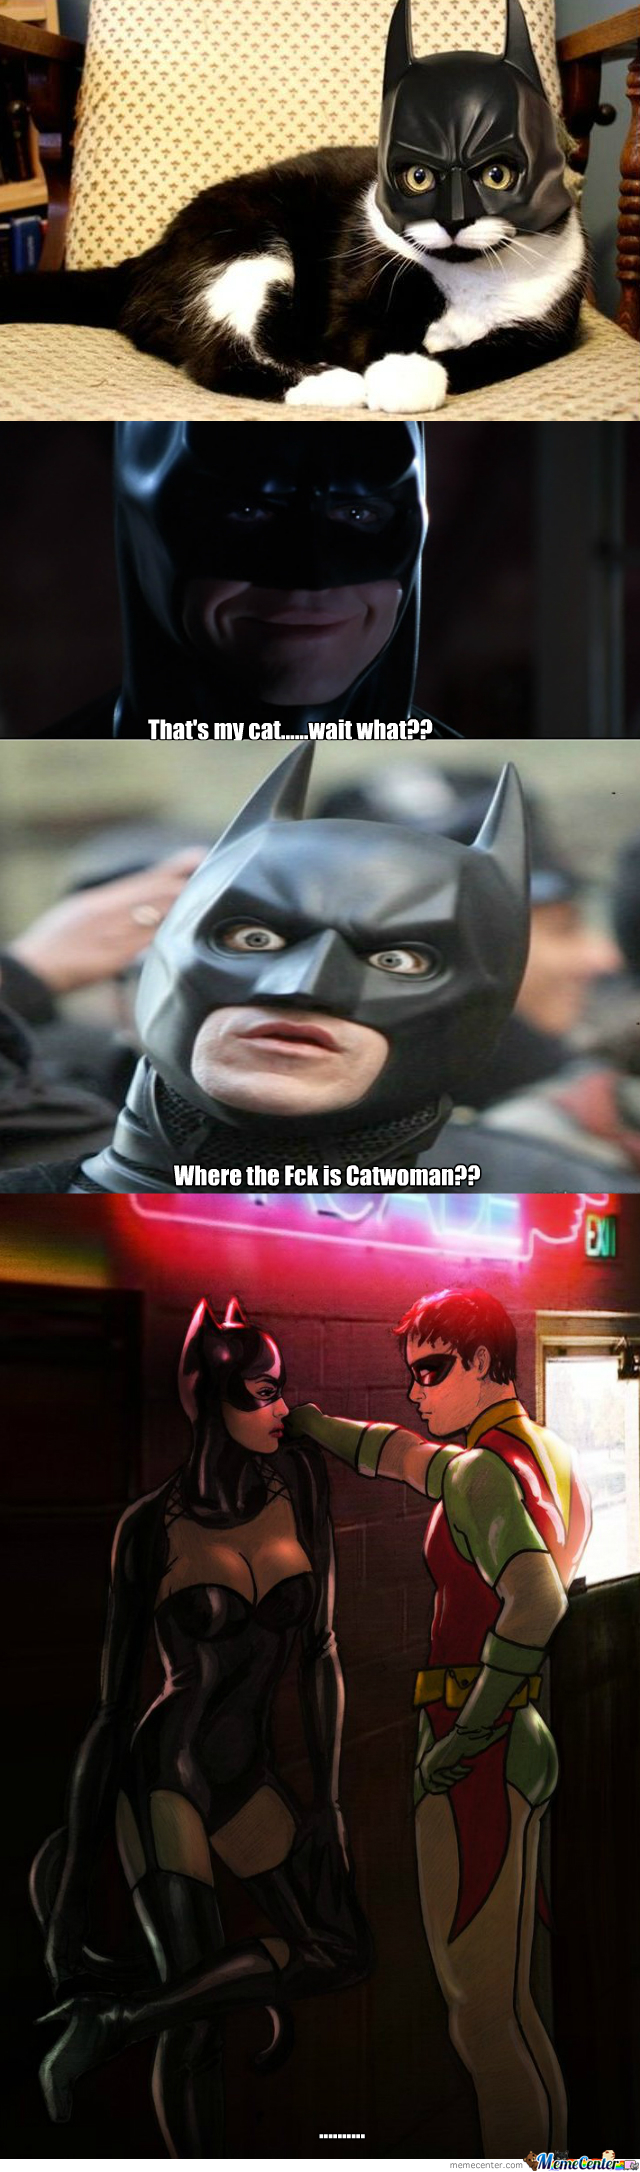 Suspicious Batman